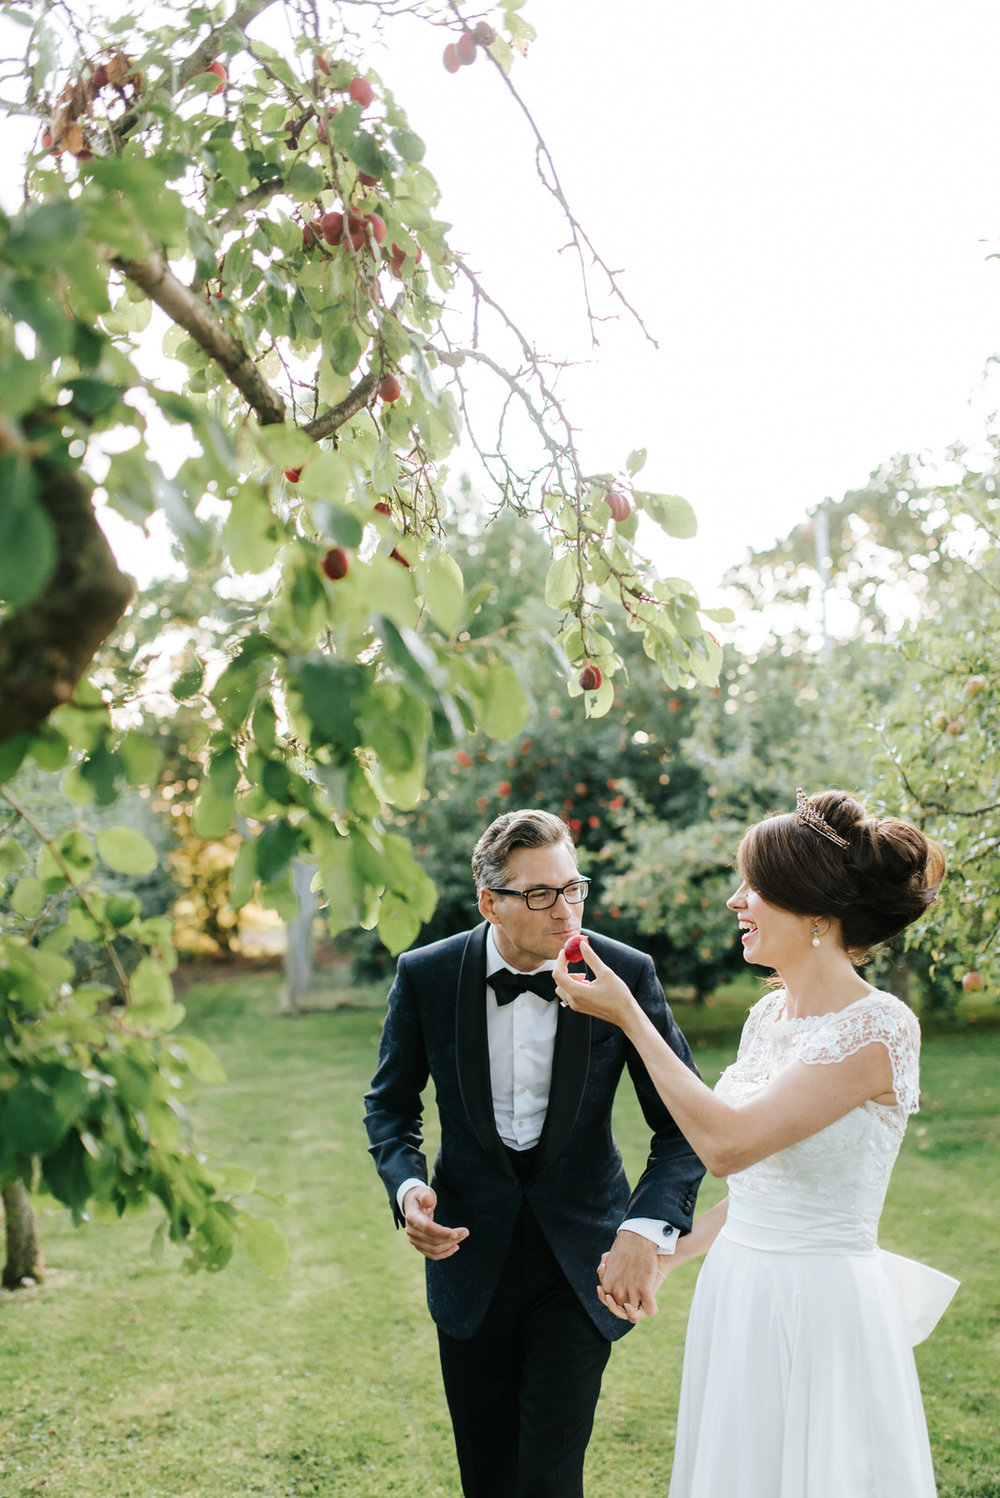 Bride gives plum to Groom so he can take a bite out of it during